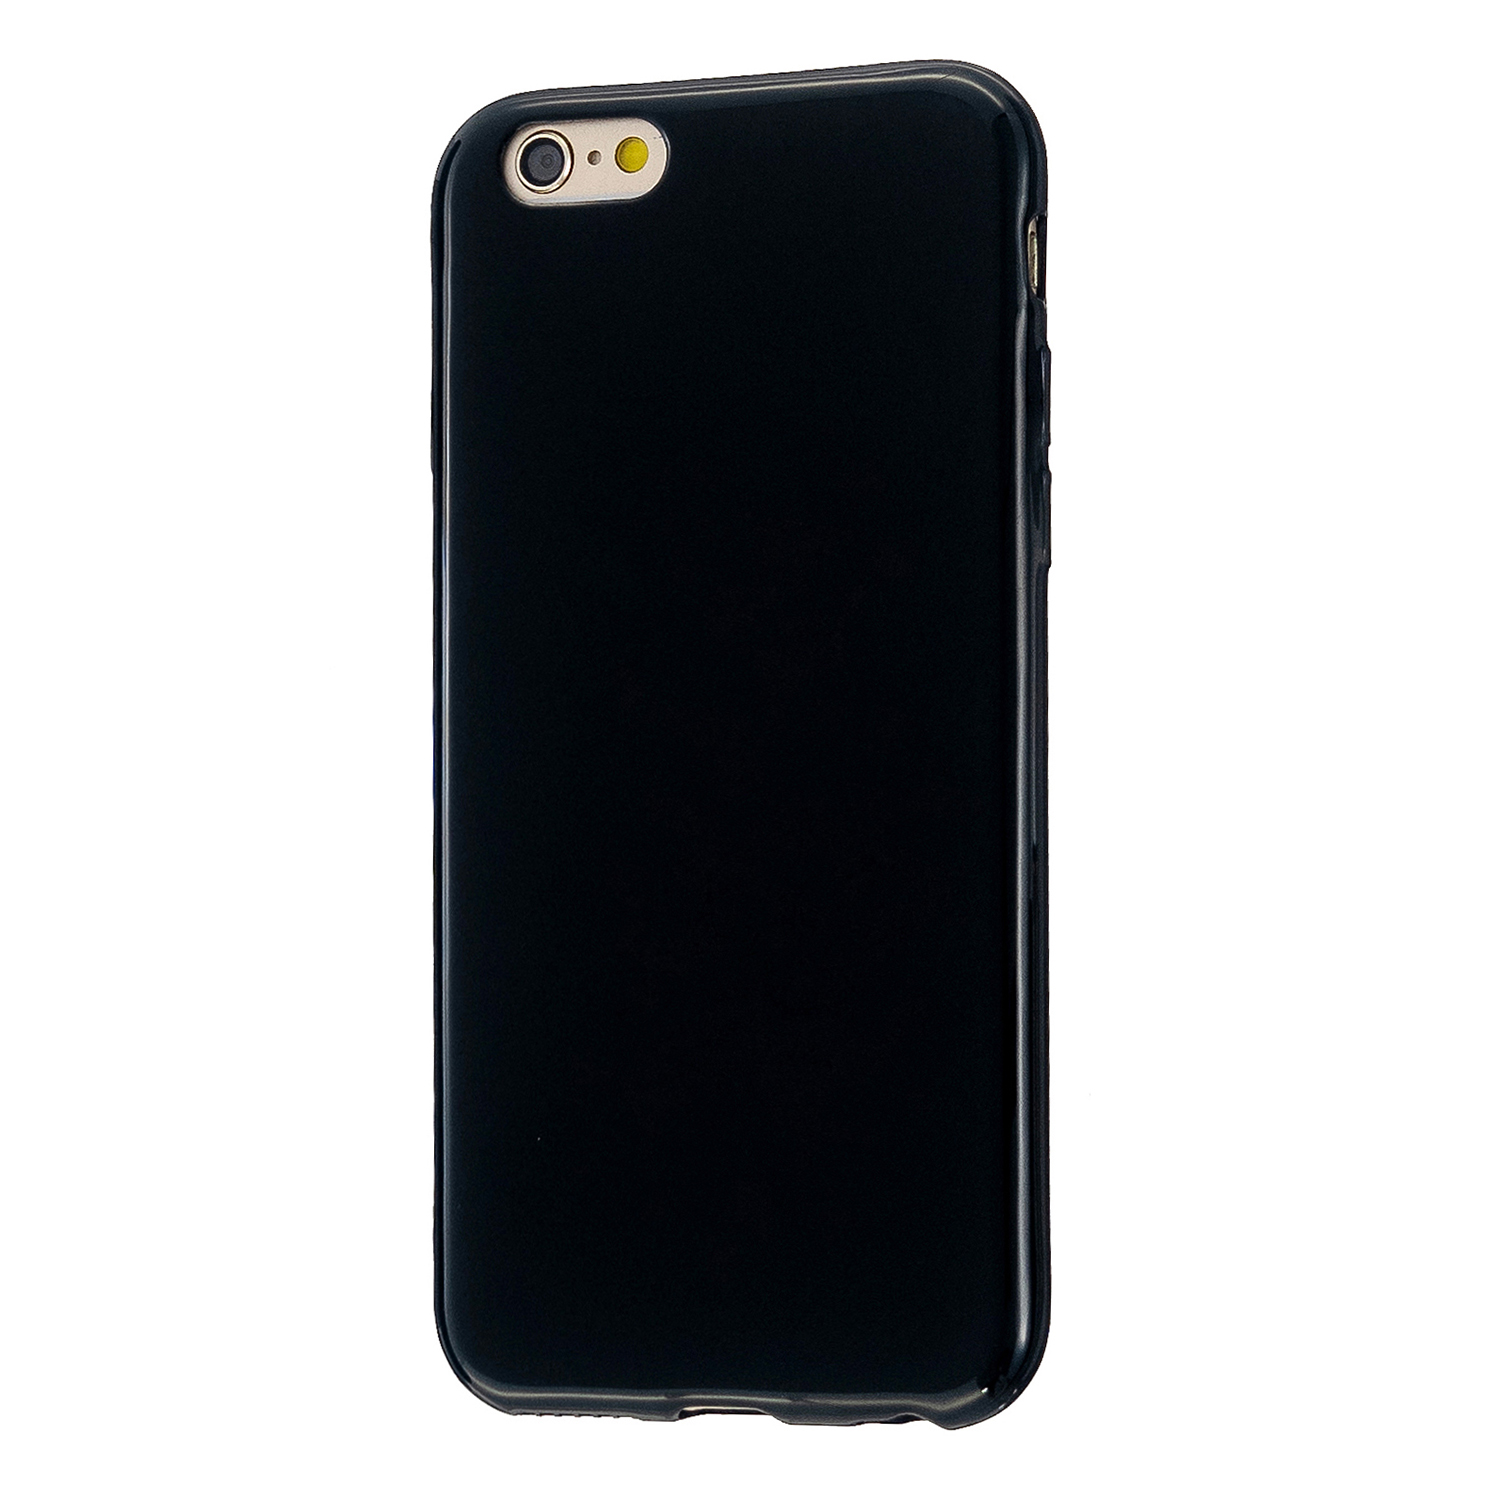 For iPhone 5/5S/SE/6/6S/6 Plus/6S Plus/7/8/7 Plus/8 Plus Cellphone Cover Soft TPU Bumper Protector Phone Shell Bright black